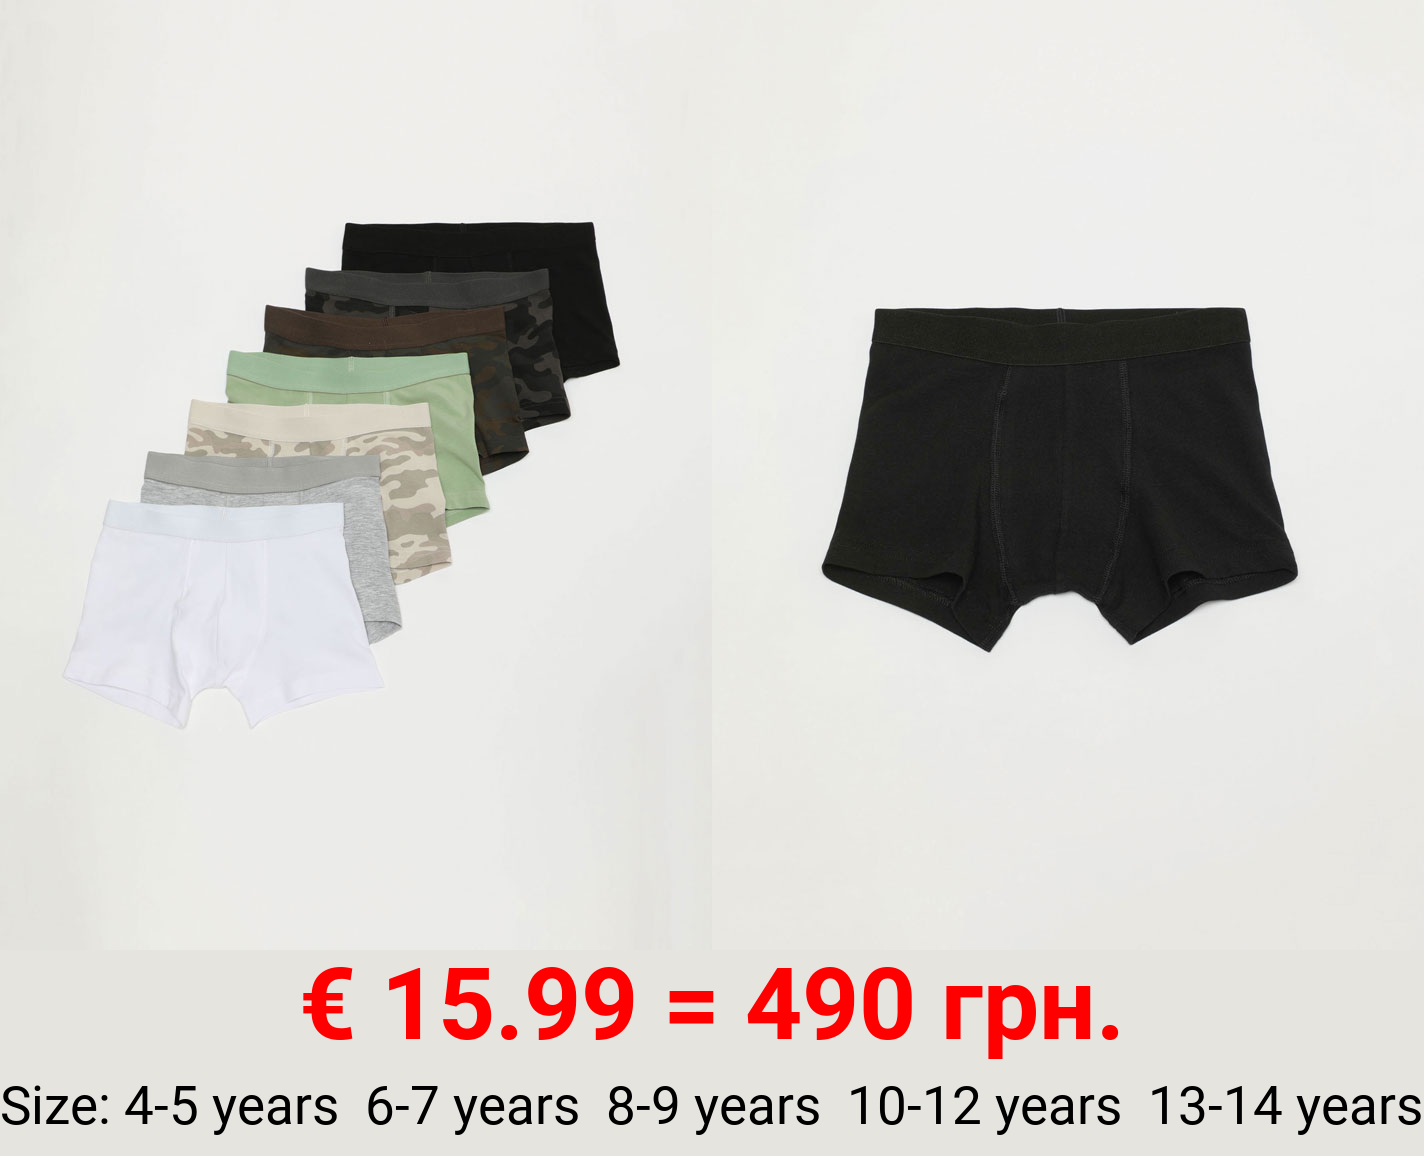 Pack of 7 plain and printed boxers